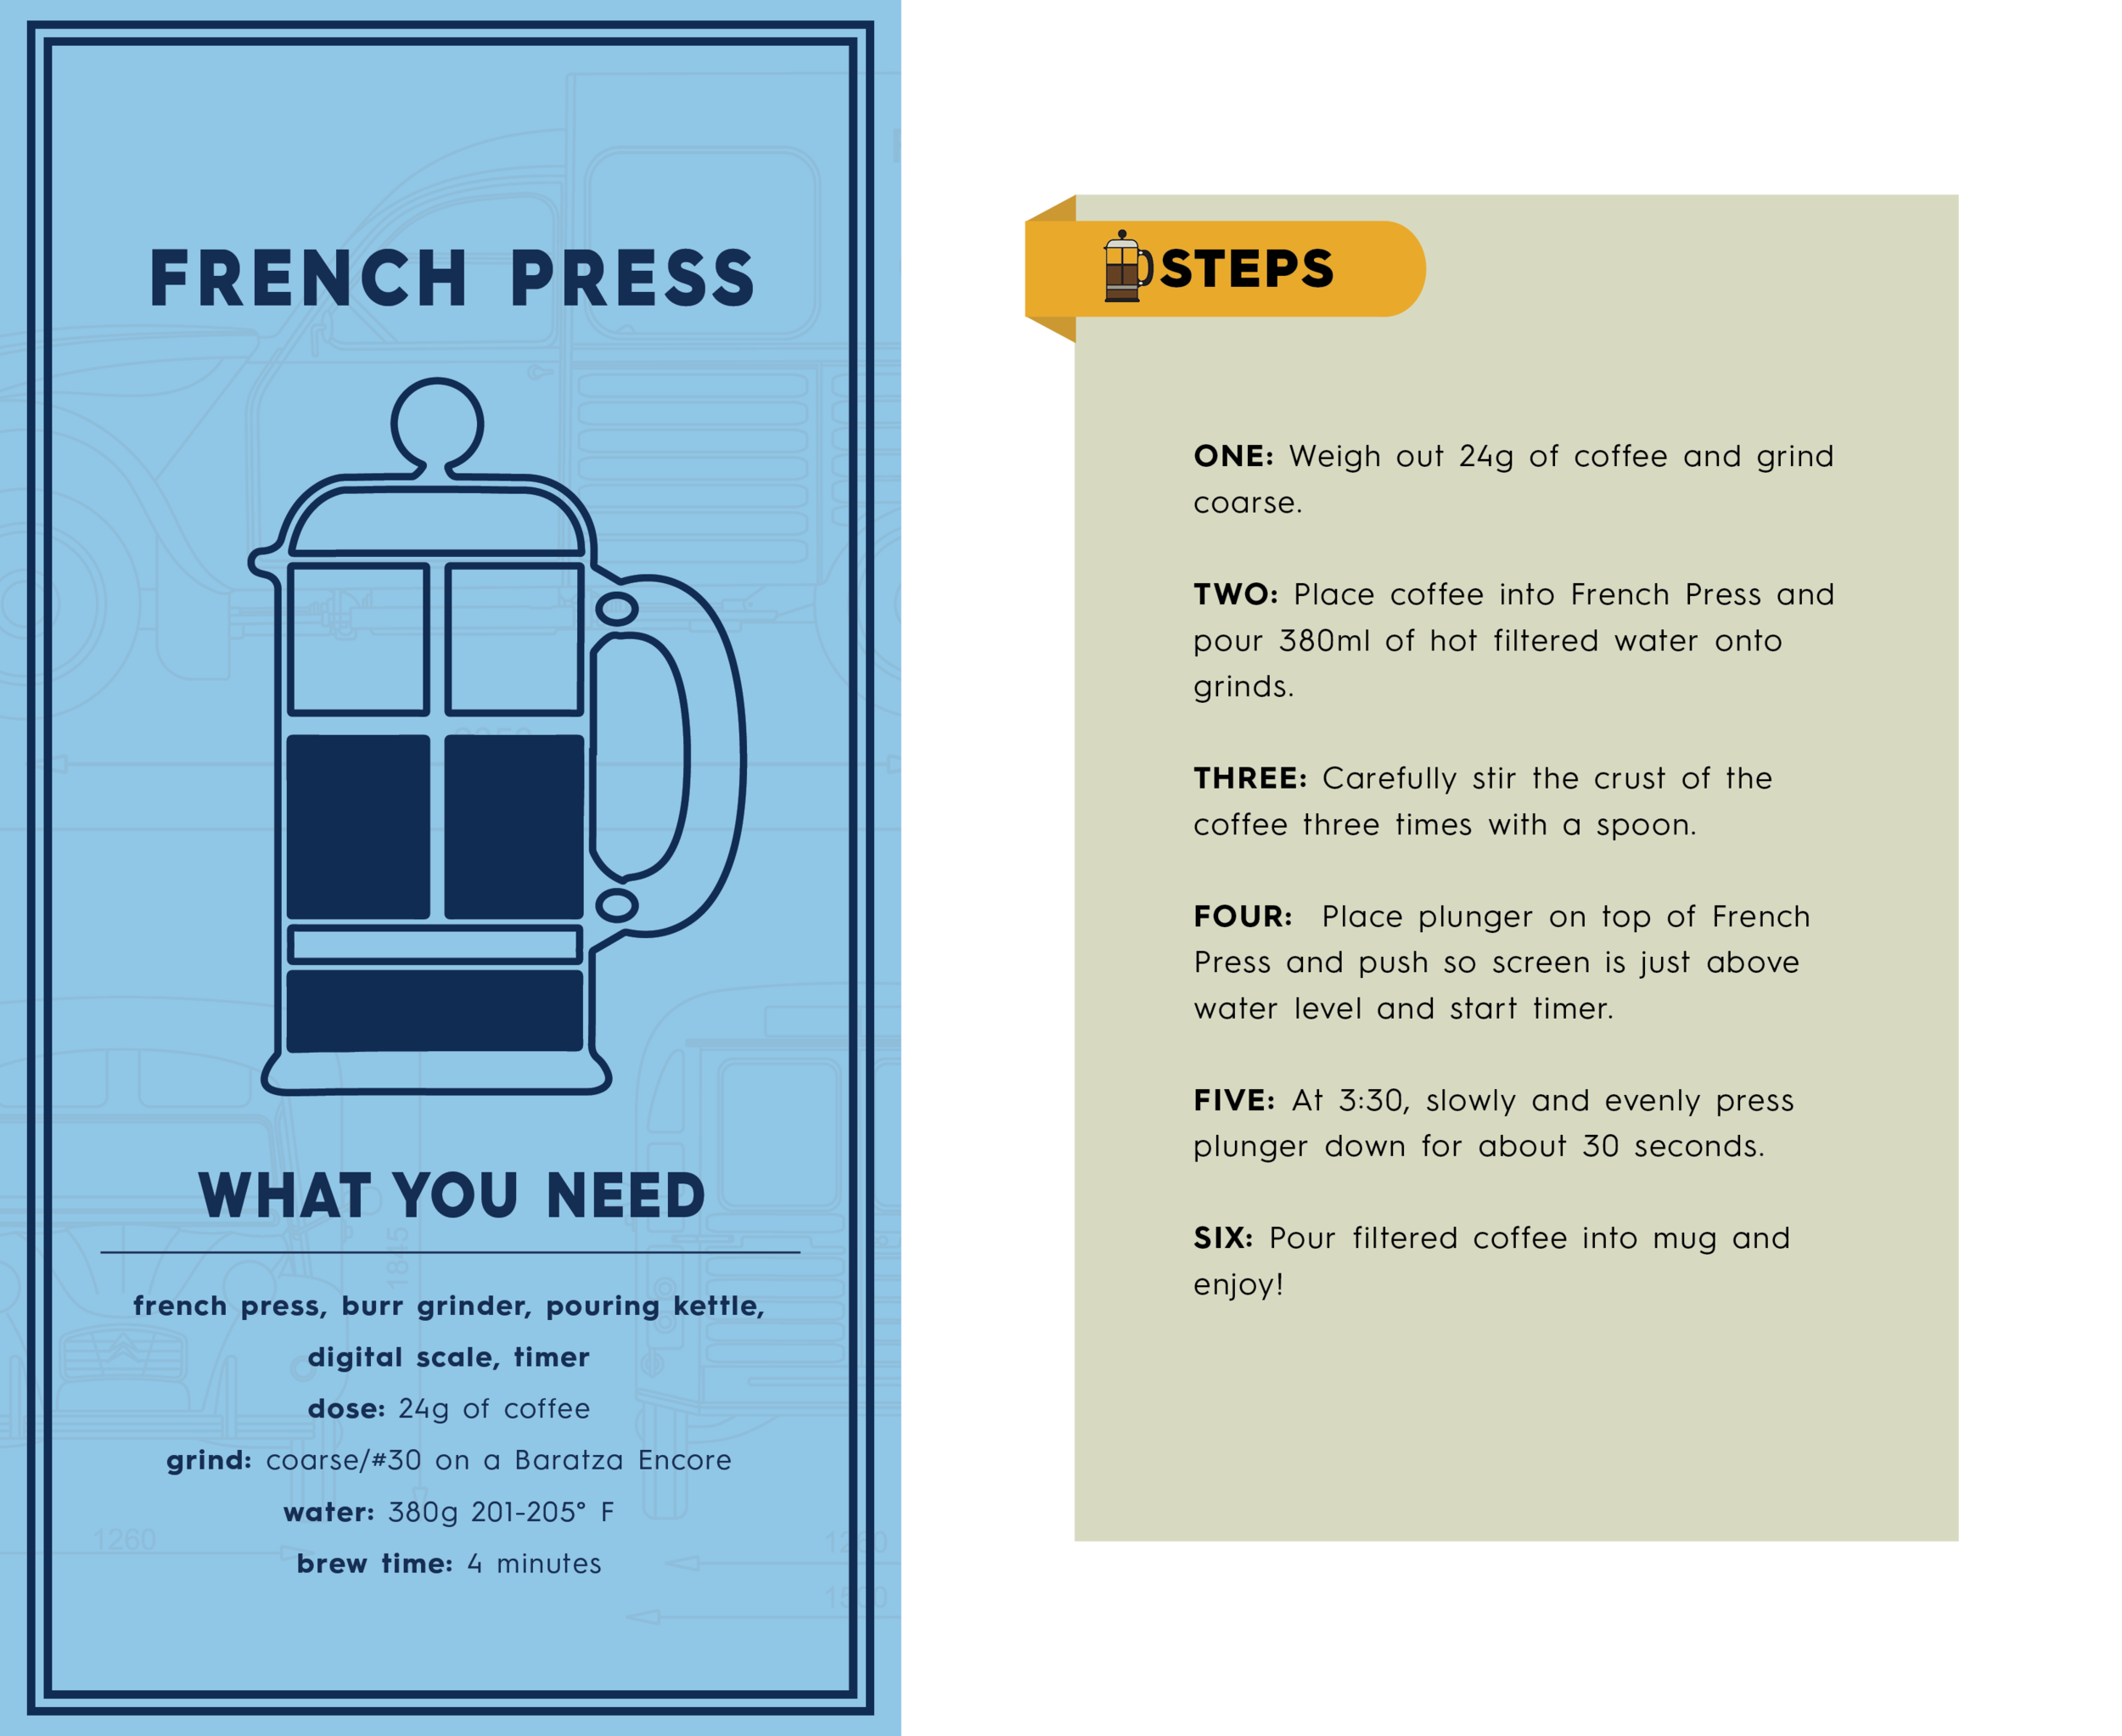 HOW TO BREW_French Press_FTC.png